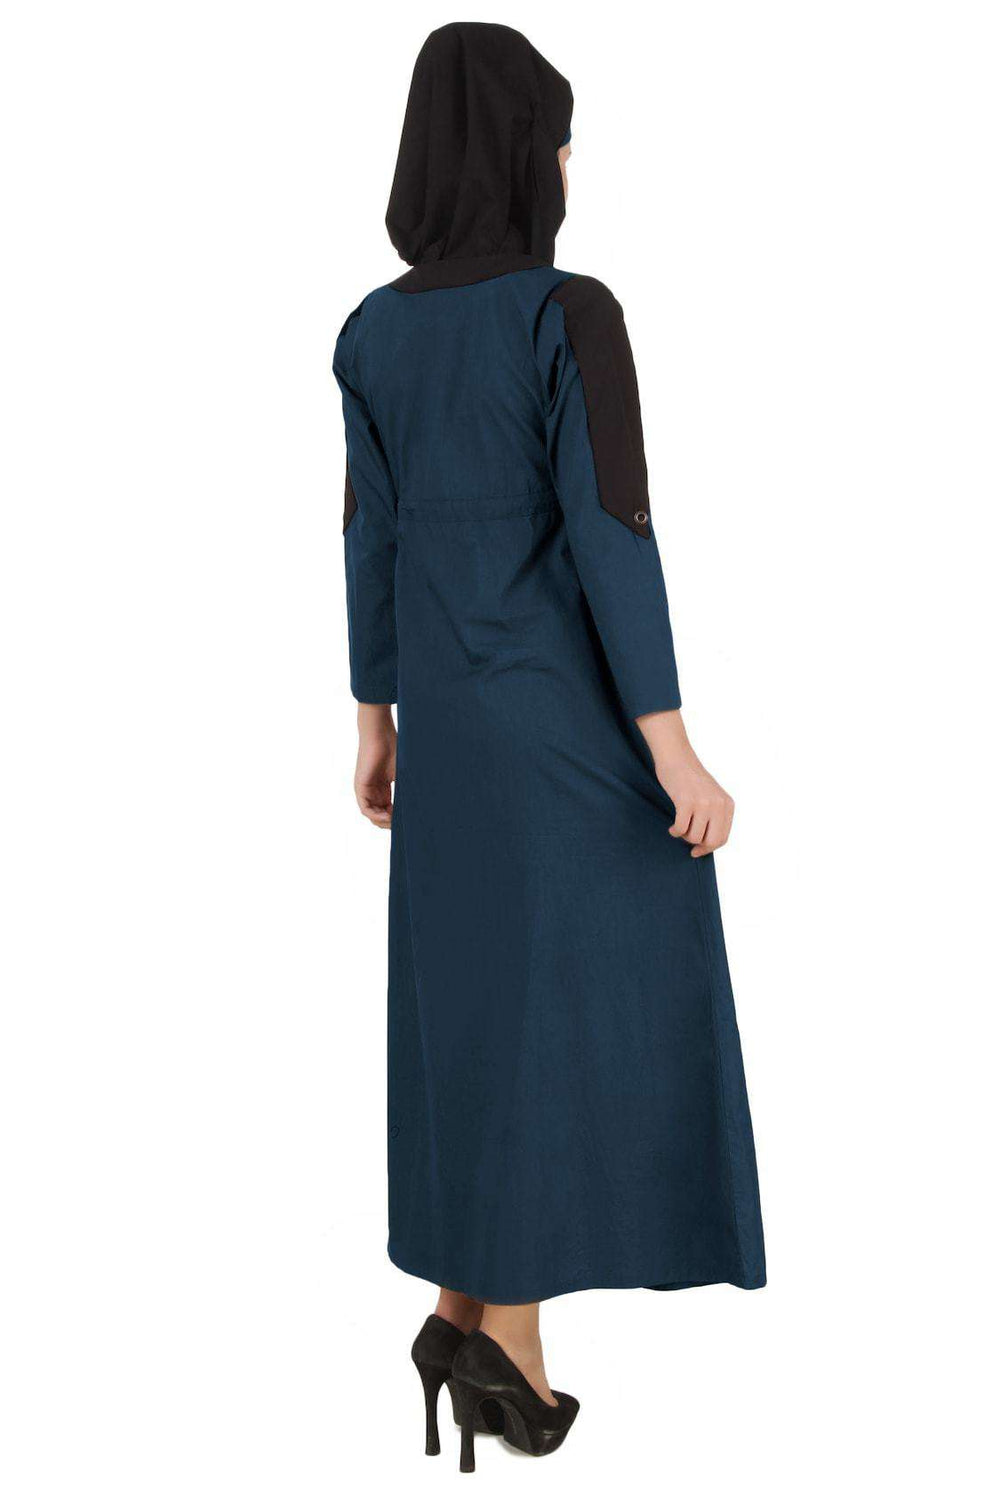 Husniya Navy Blue Cotton Jilbab